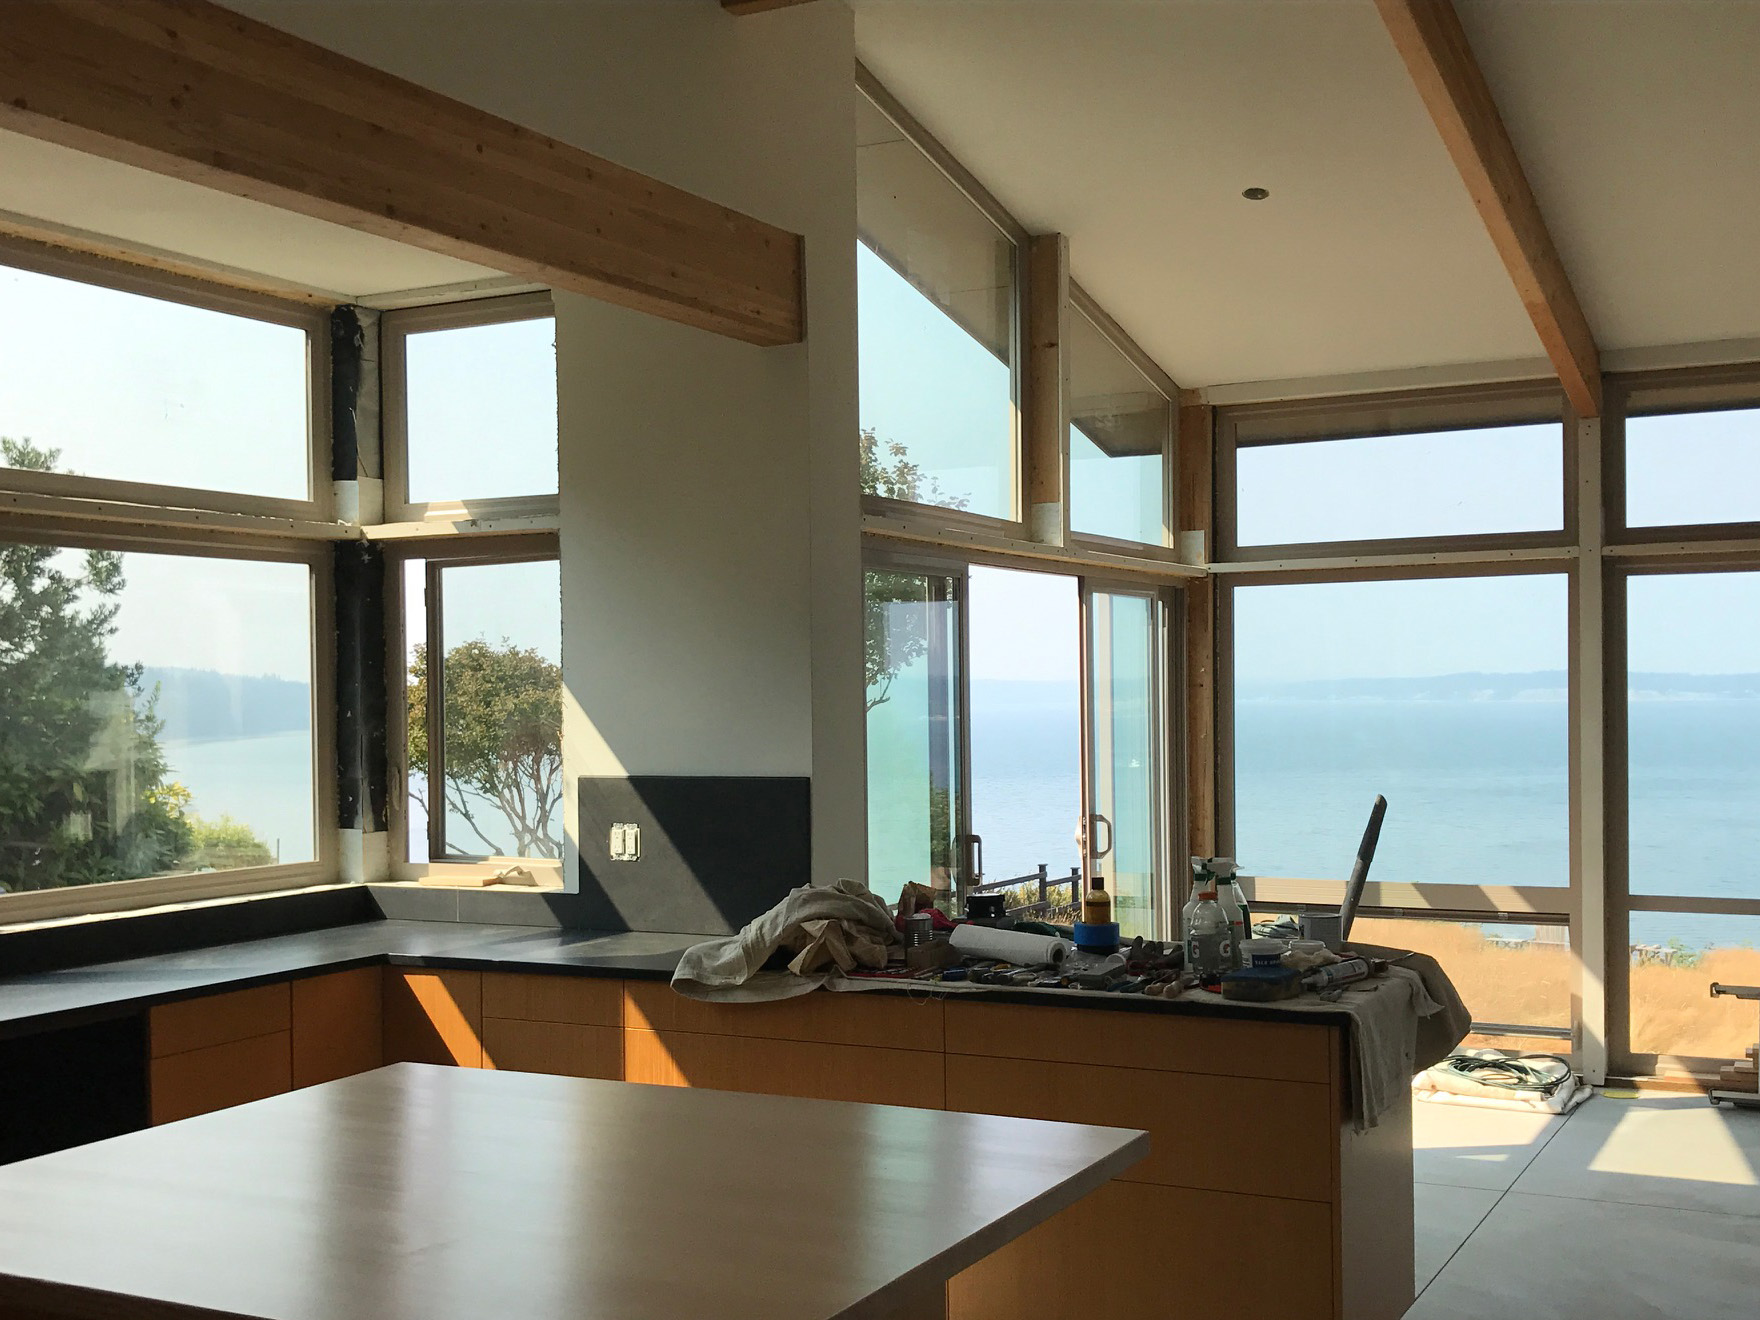 Living IN the view: proper siting for view, sunlight, and privacy make a great room greater